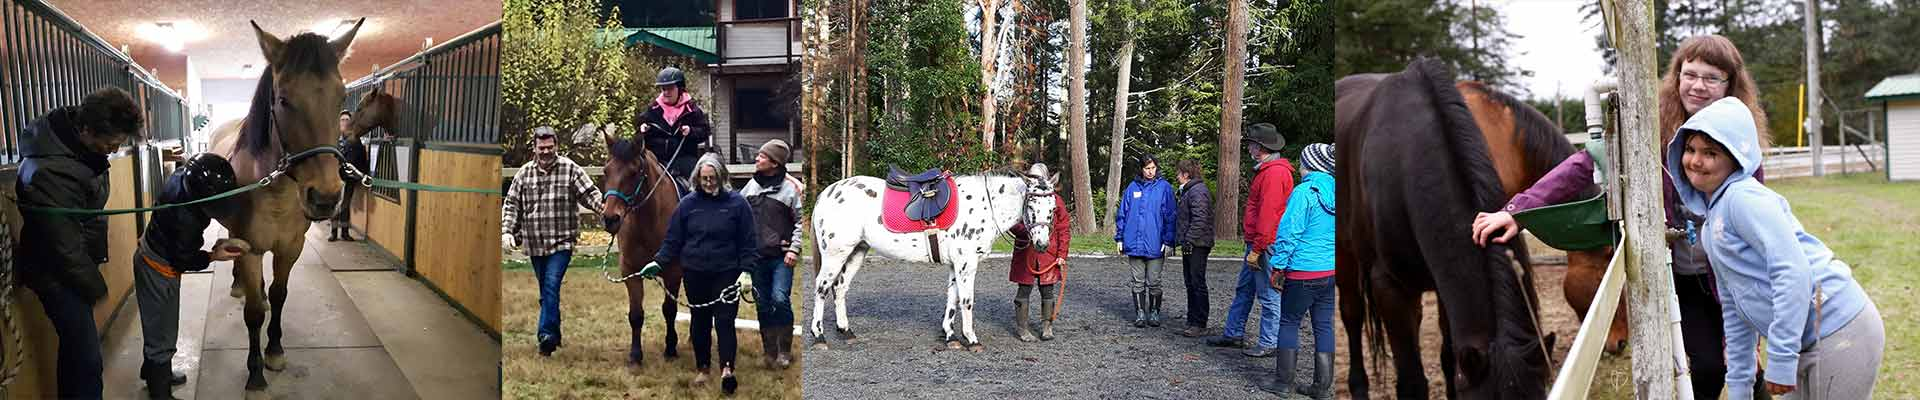 salt spring island riding,therapeutic riding,sstra,salt spring island horse,salt spring island horseback,salt spring island horse back,salt spring island equestrian